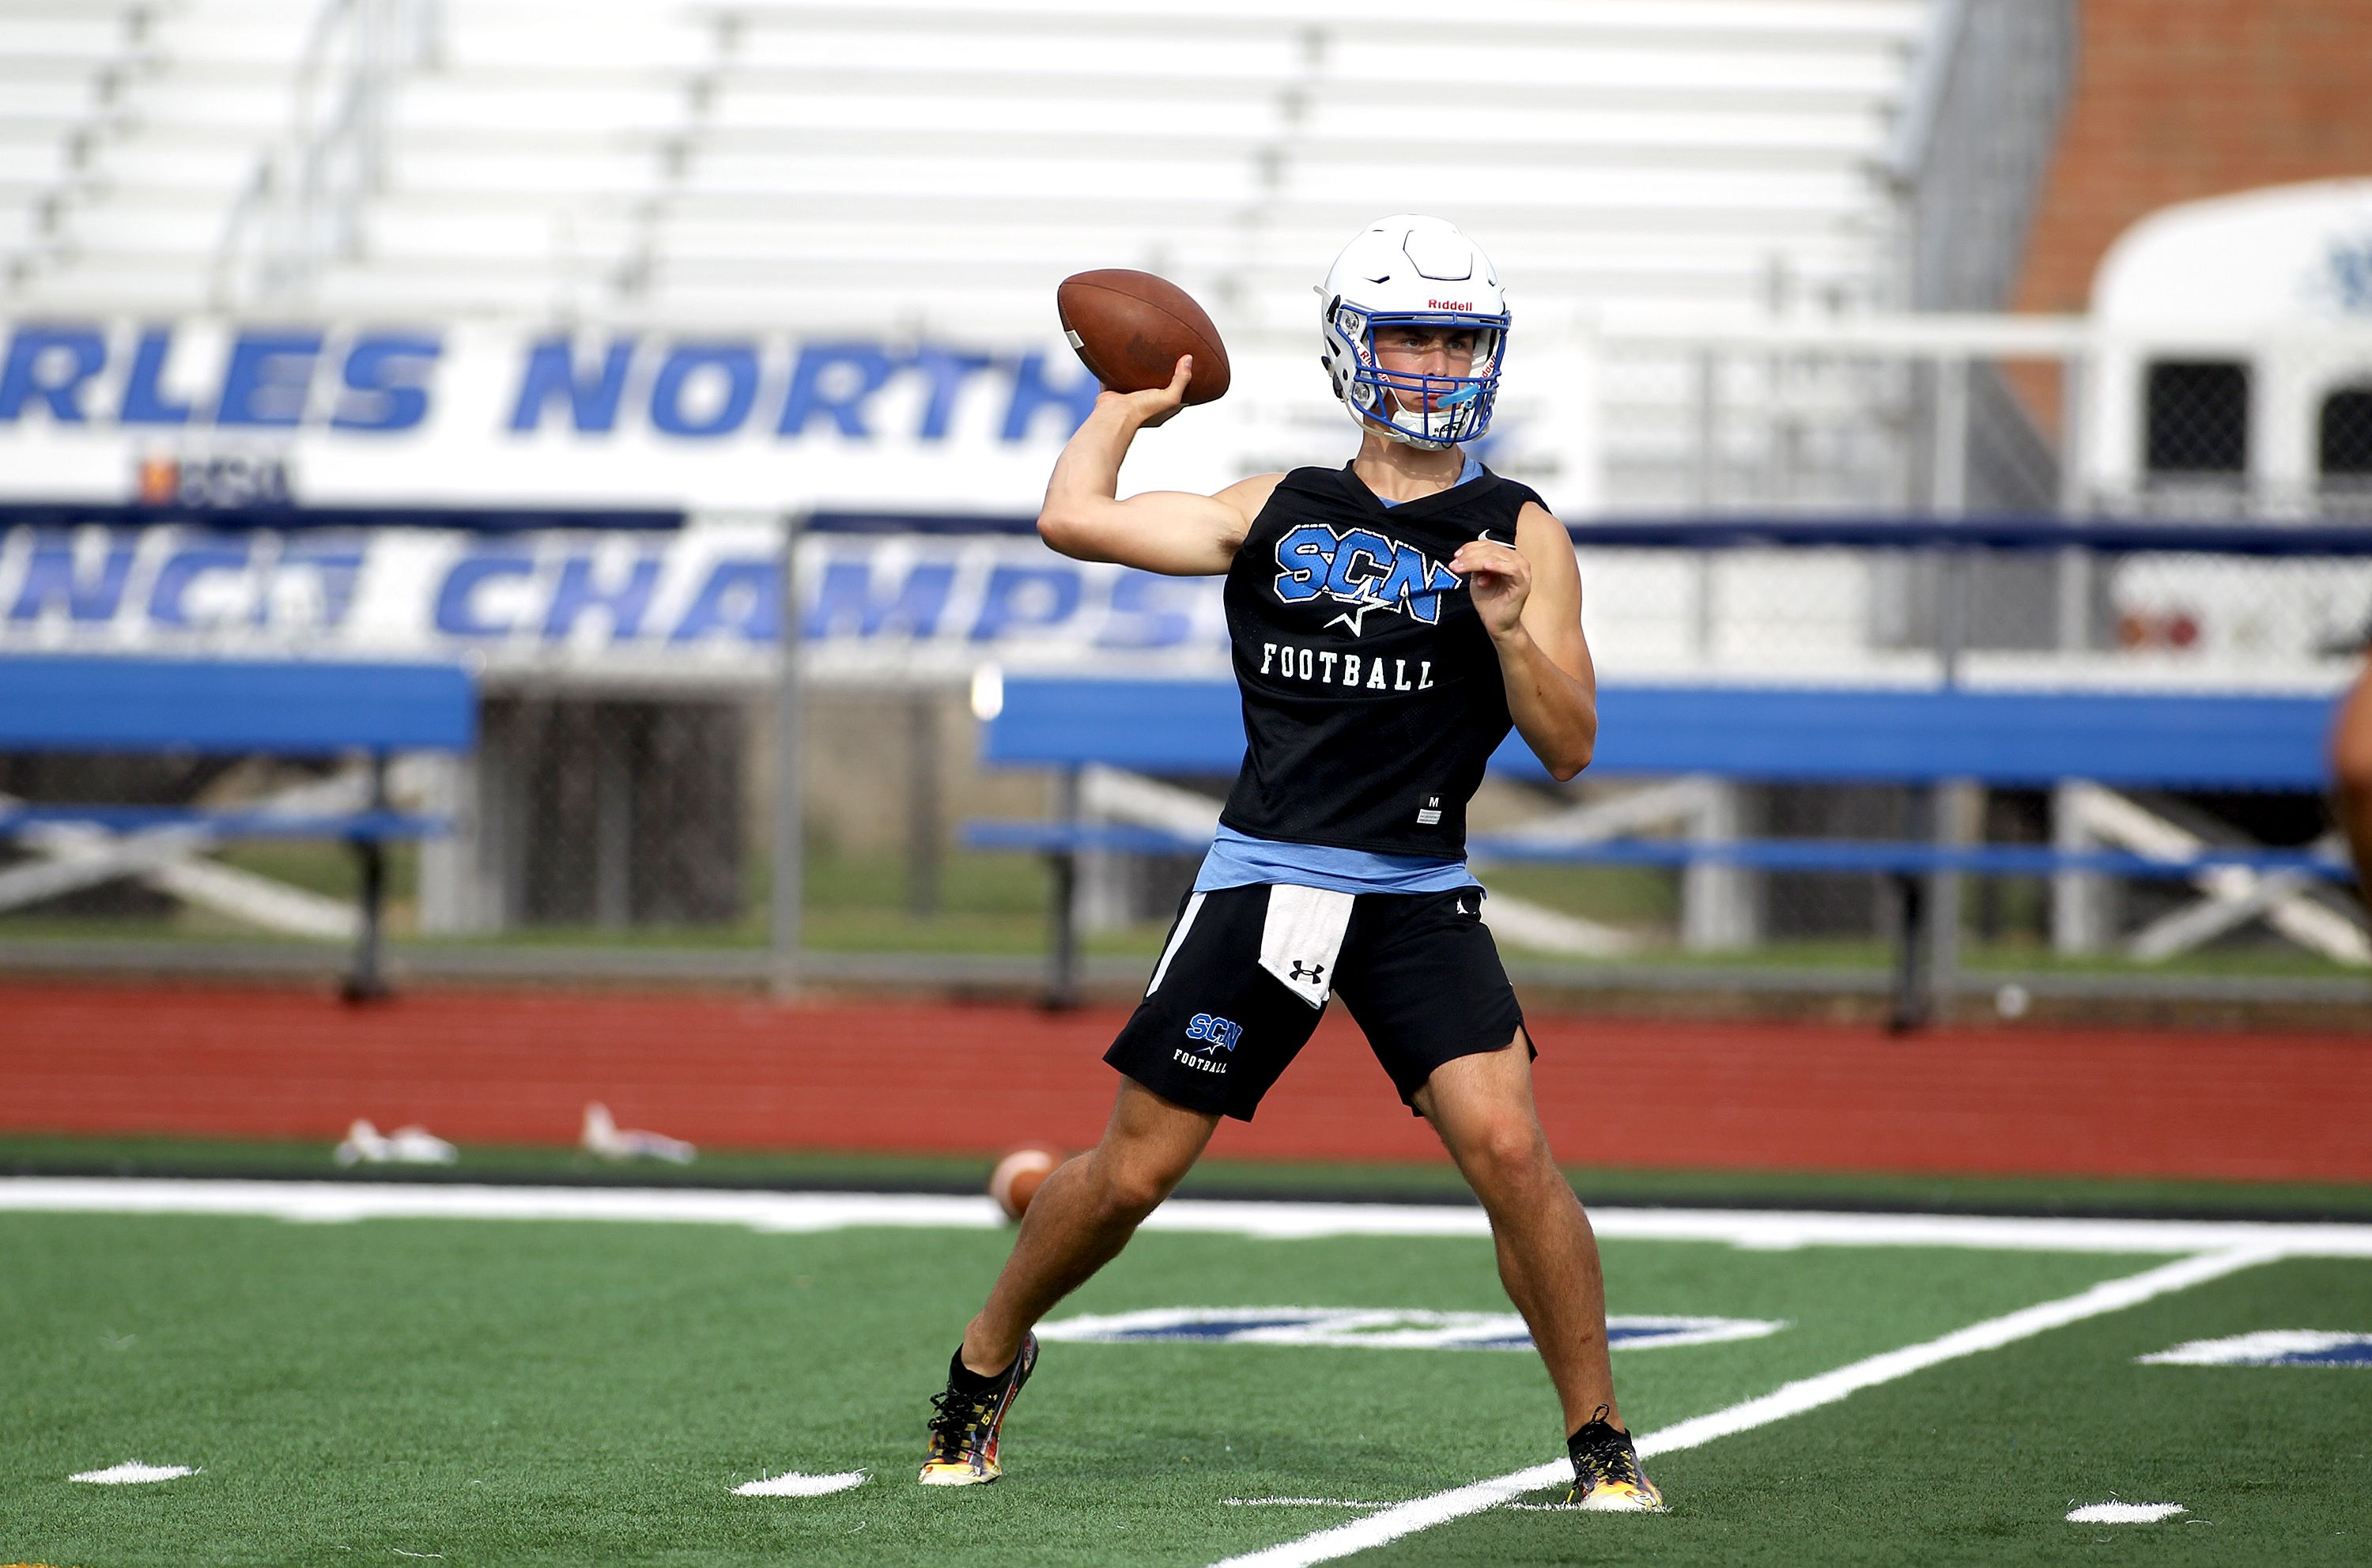 St. Charles North quarterback Ethan Plumb throws the ball during a practice at the school on Monday, Aug. 23, 2021.